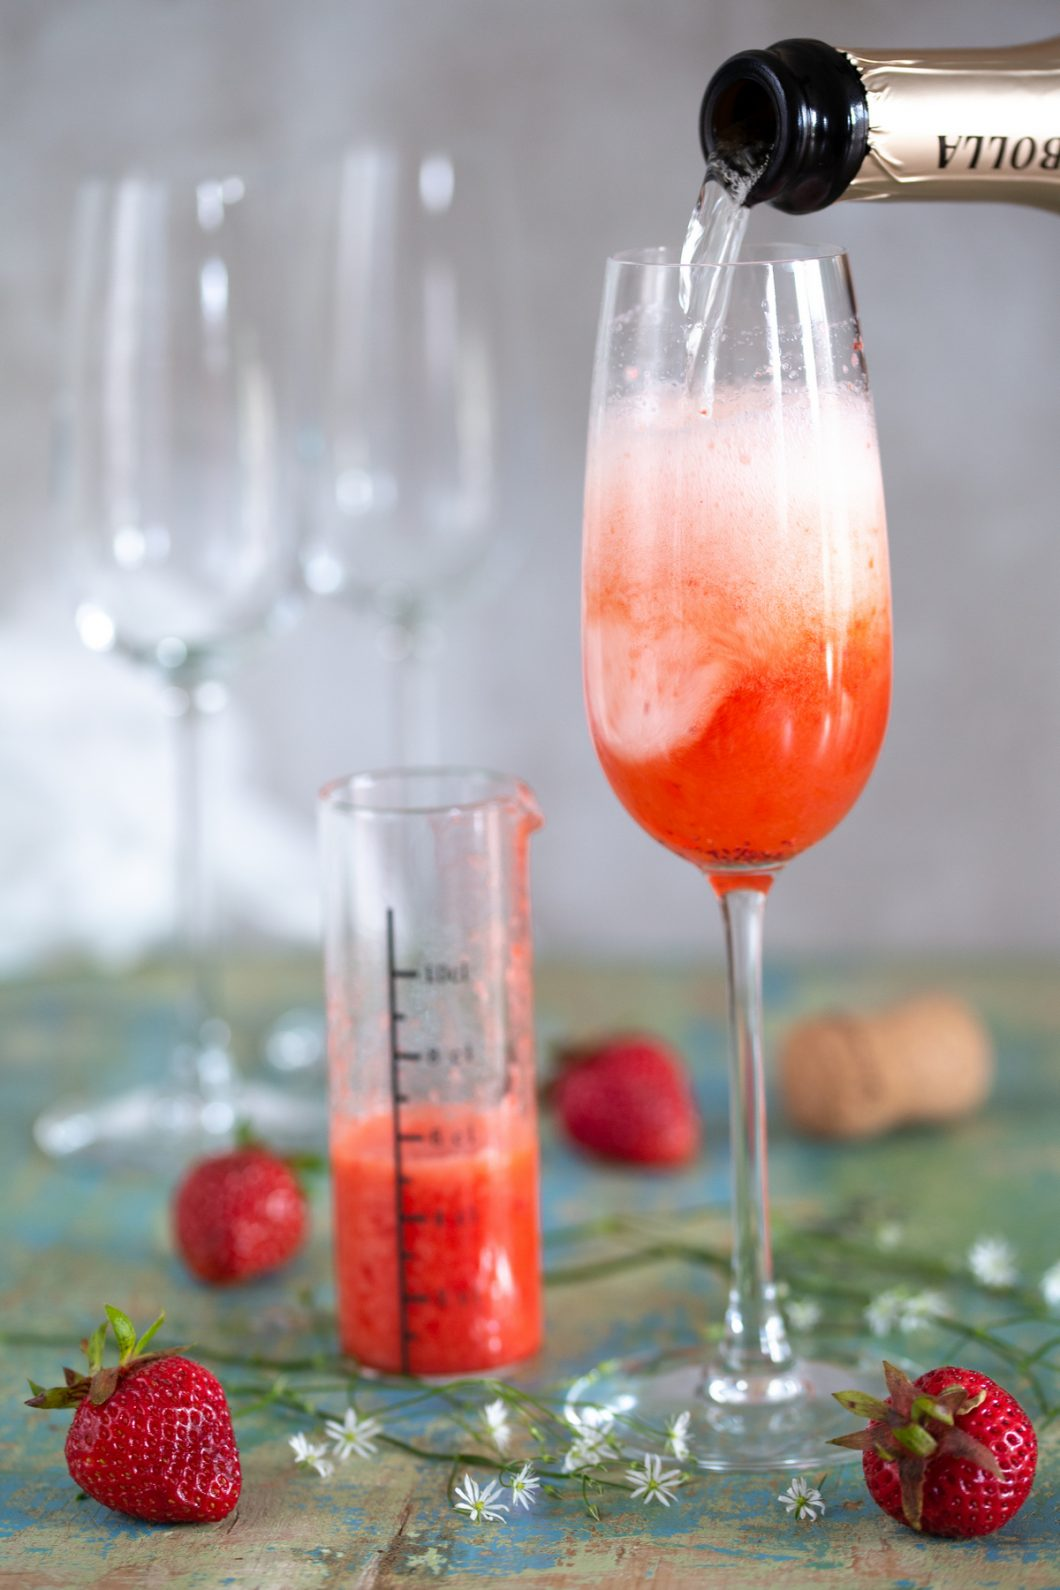 Prosecco and strawberry purée blending together.